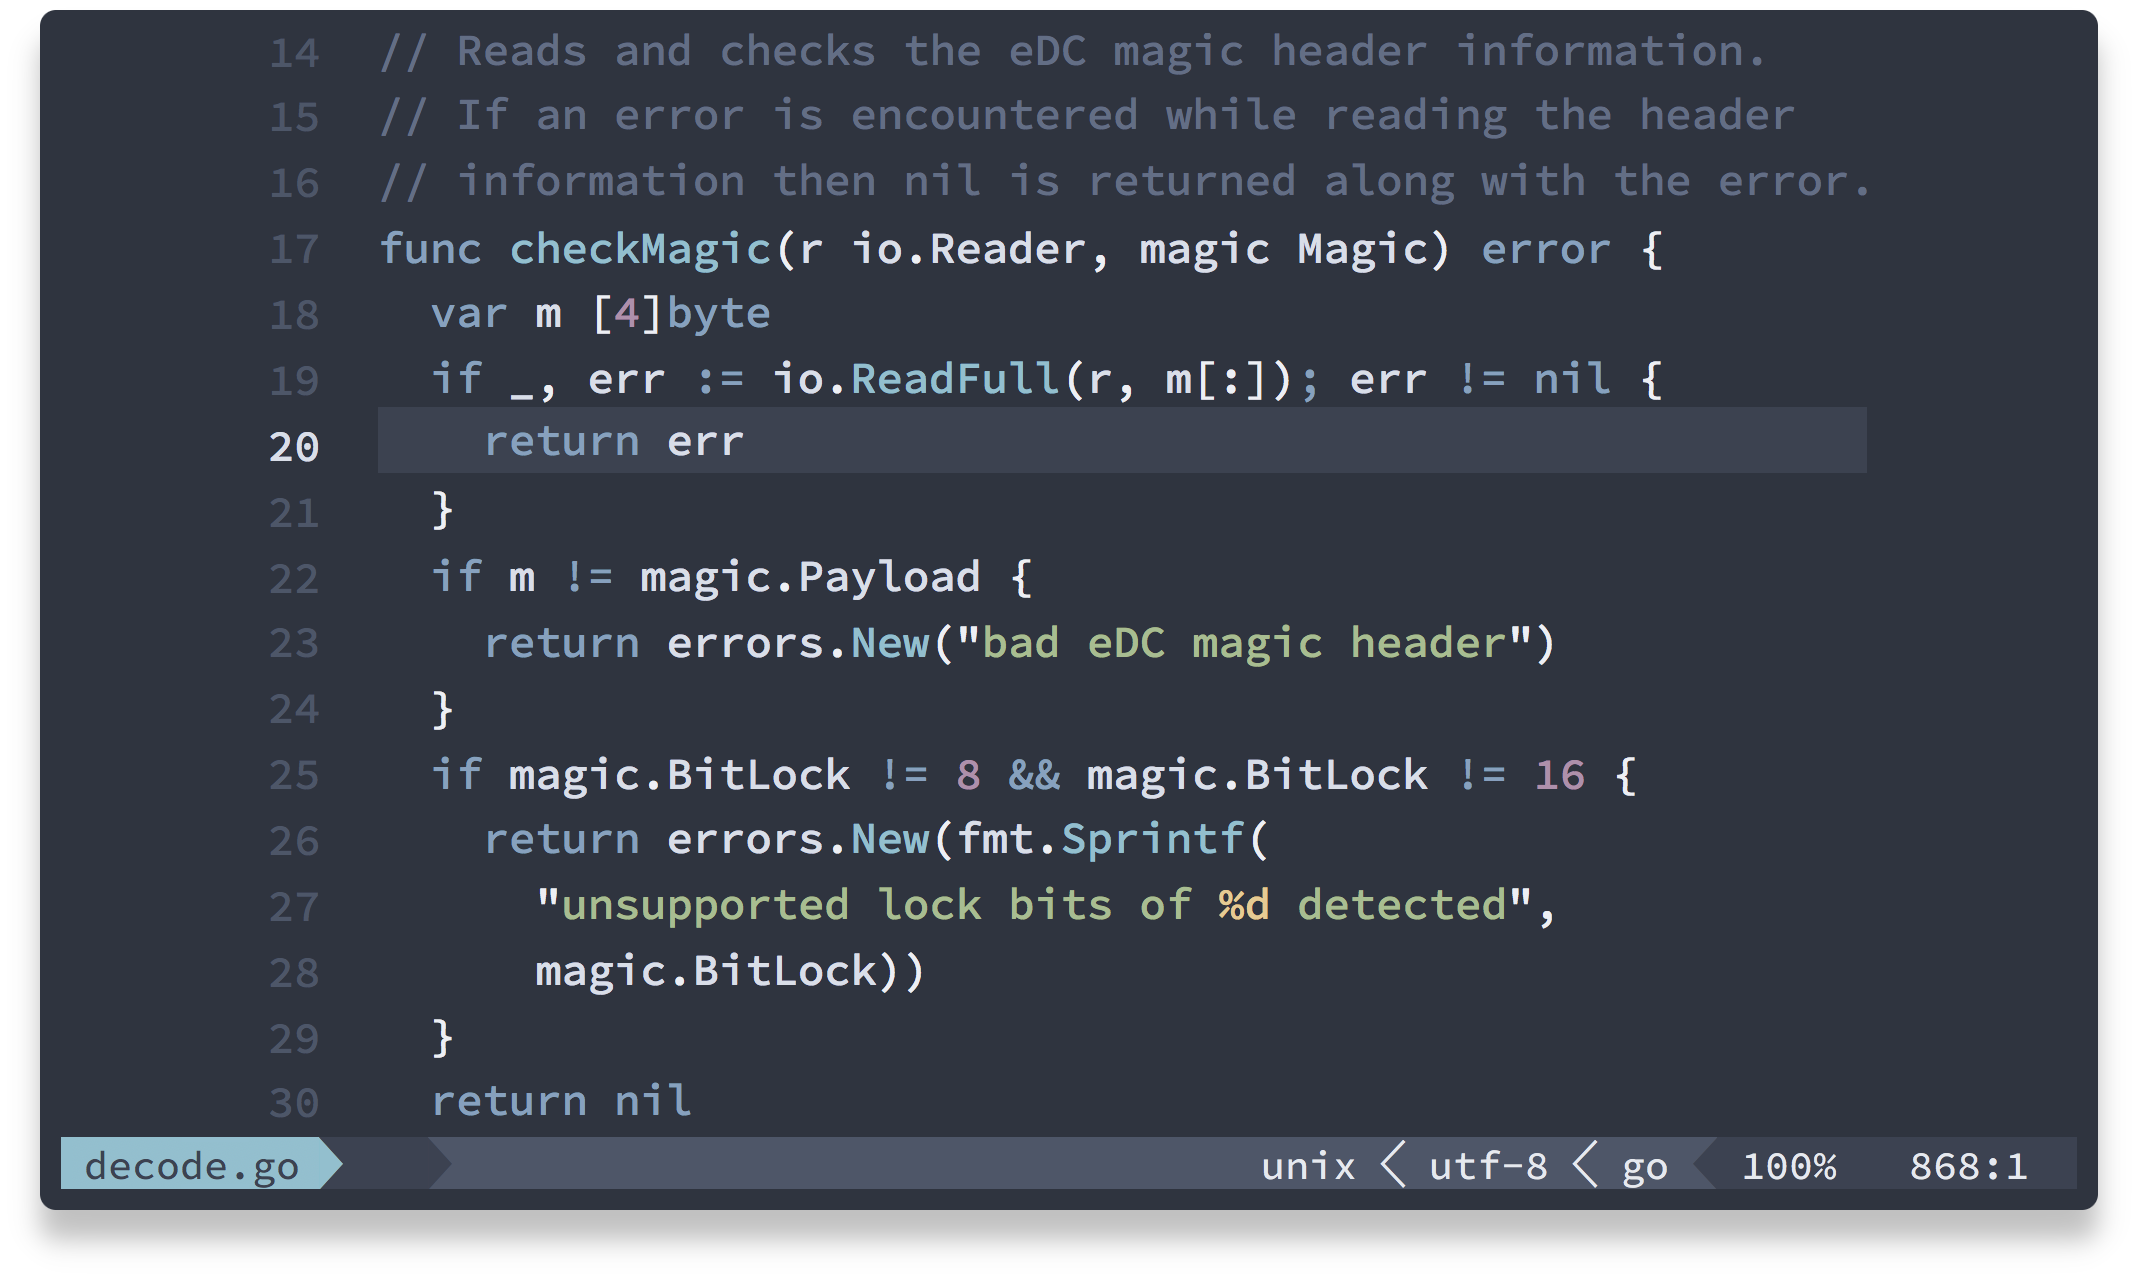 GitHub - arcticicestudio/nord-emacs: An arctic, north-bluish clean